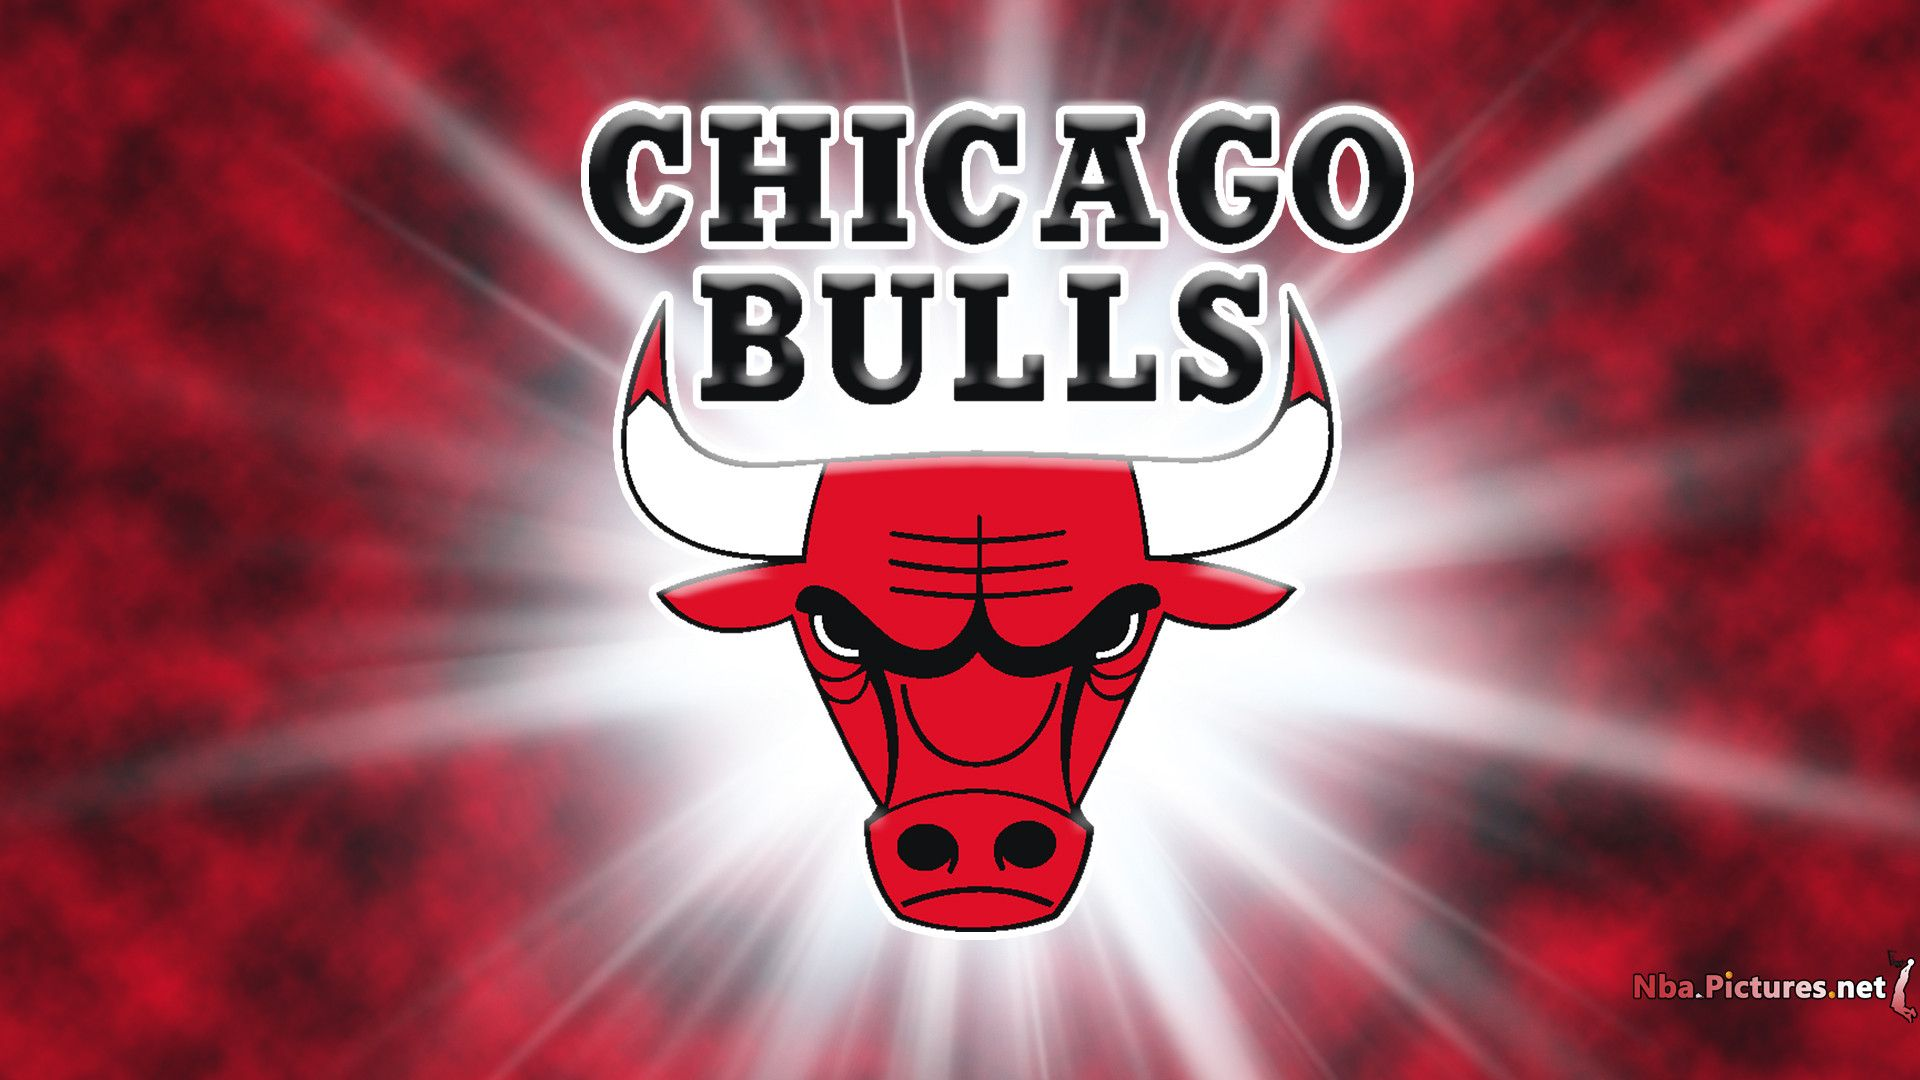 Chicago Bulls Desktop Clipart.